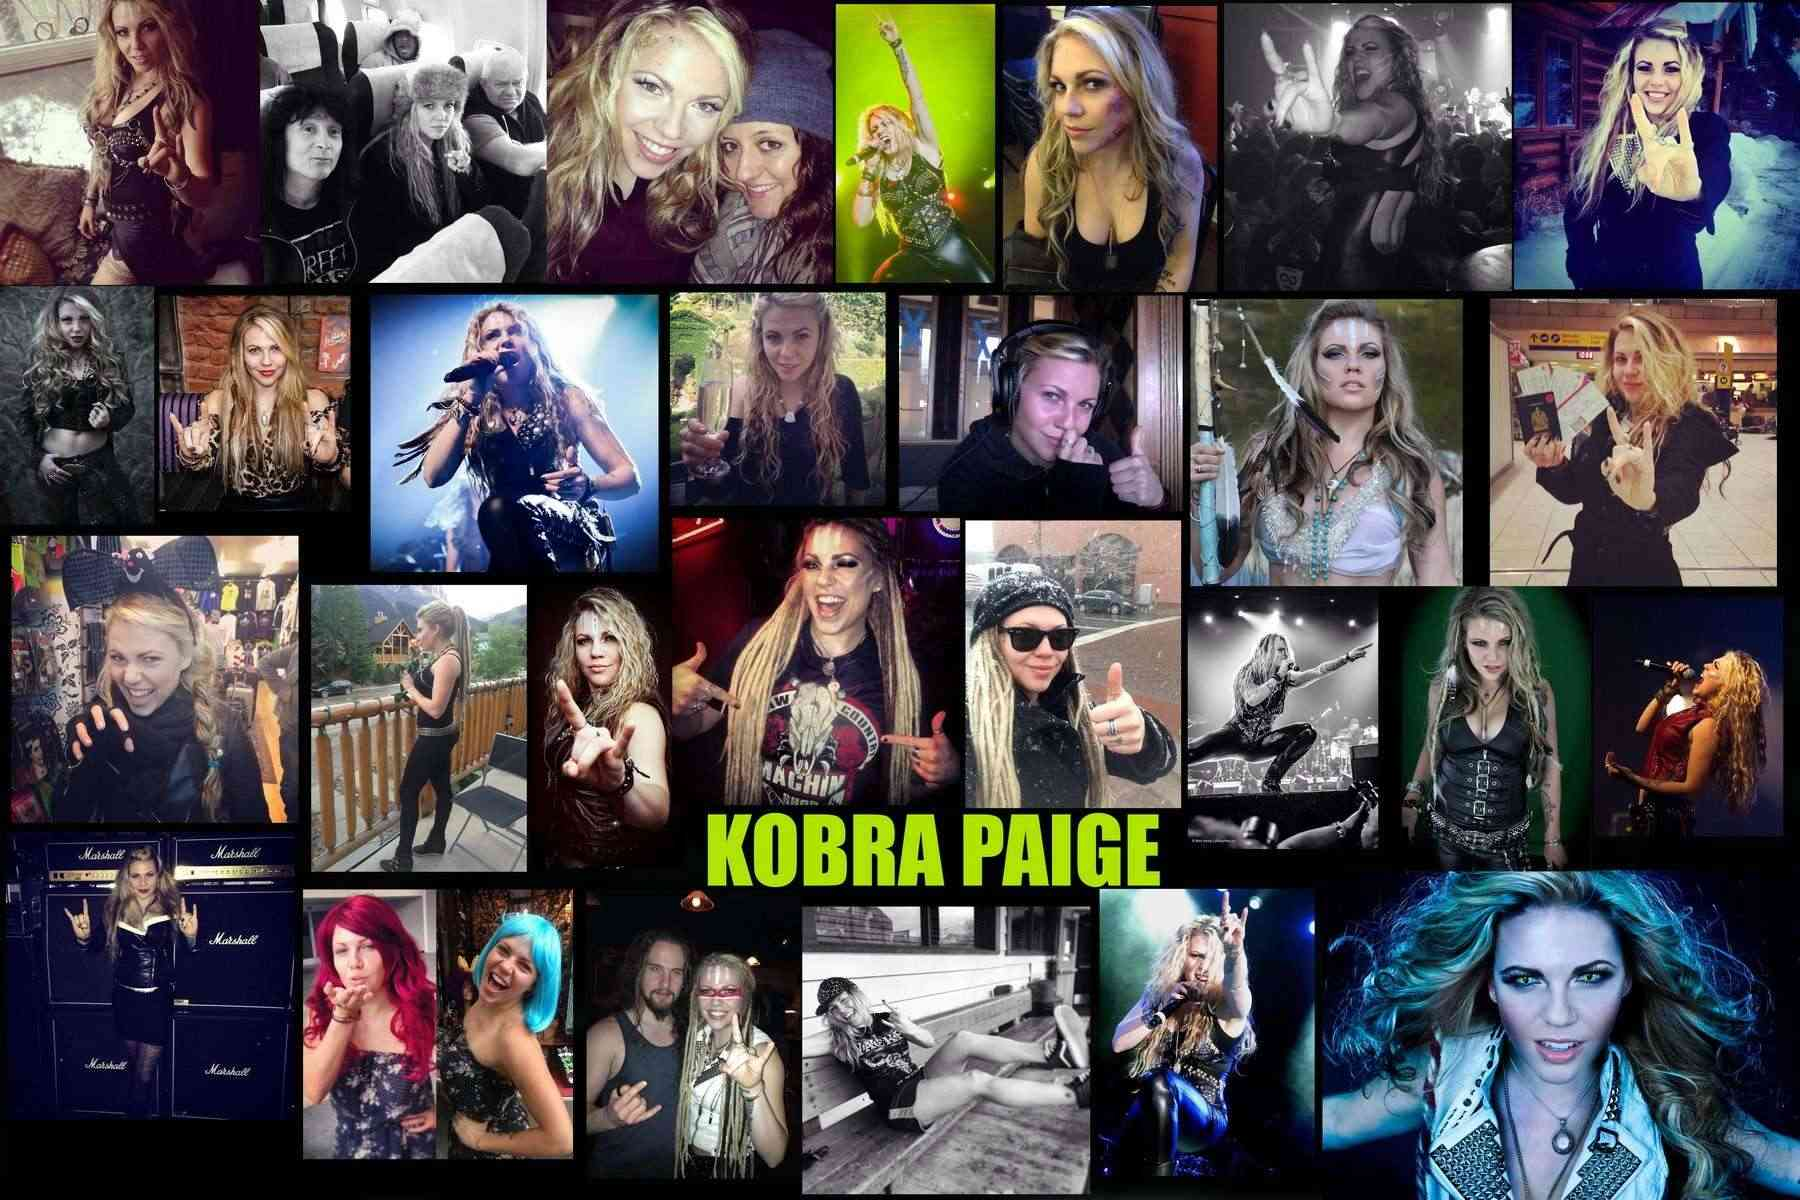 Mes petits montages photos ... - Page 4 Kobra_11